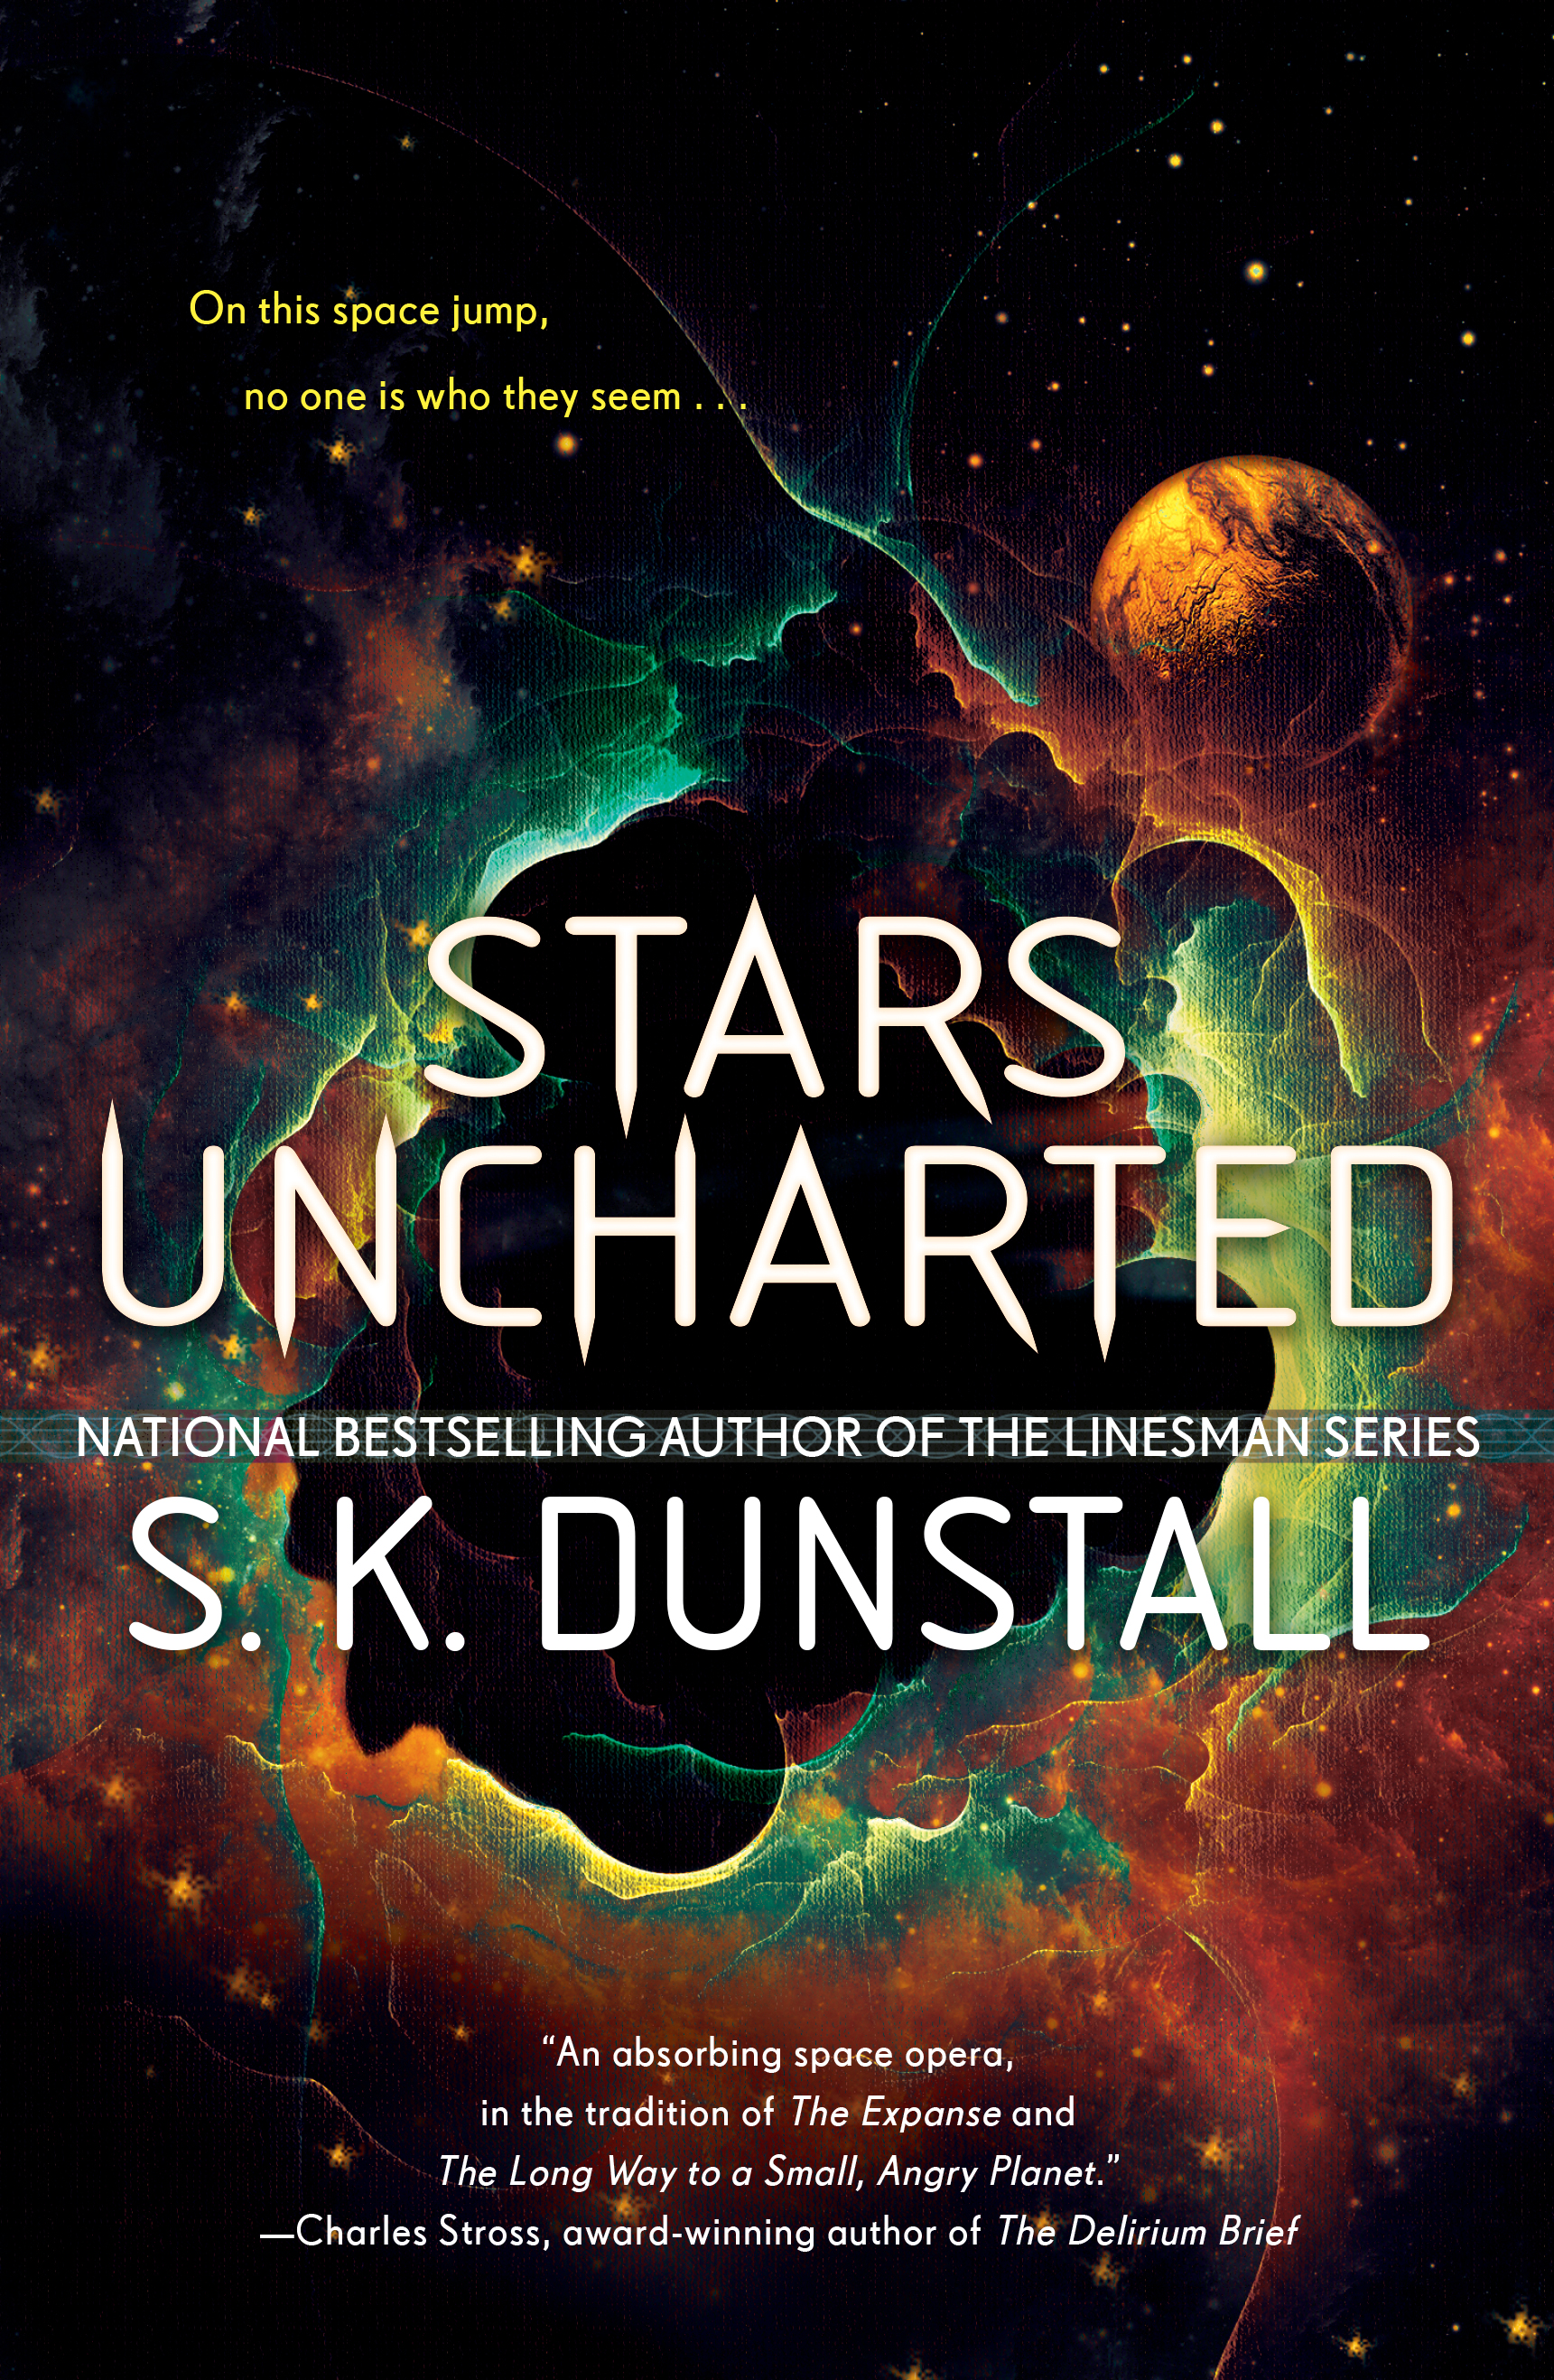 Stars Uncharted cover image